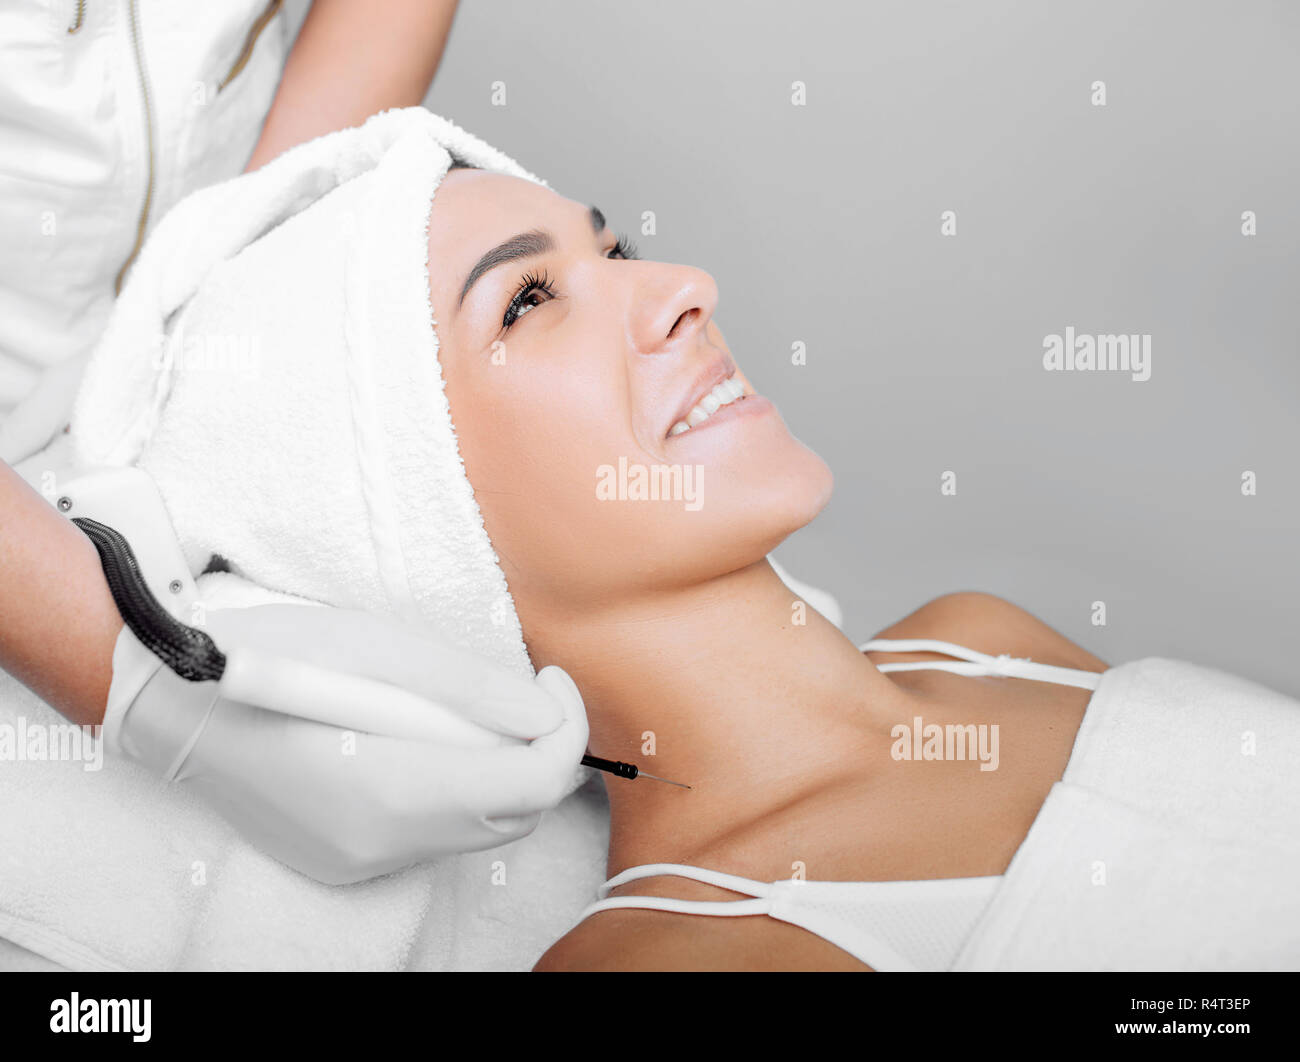 Wart removing on neck area at clinic - Stock Image